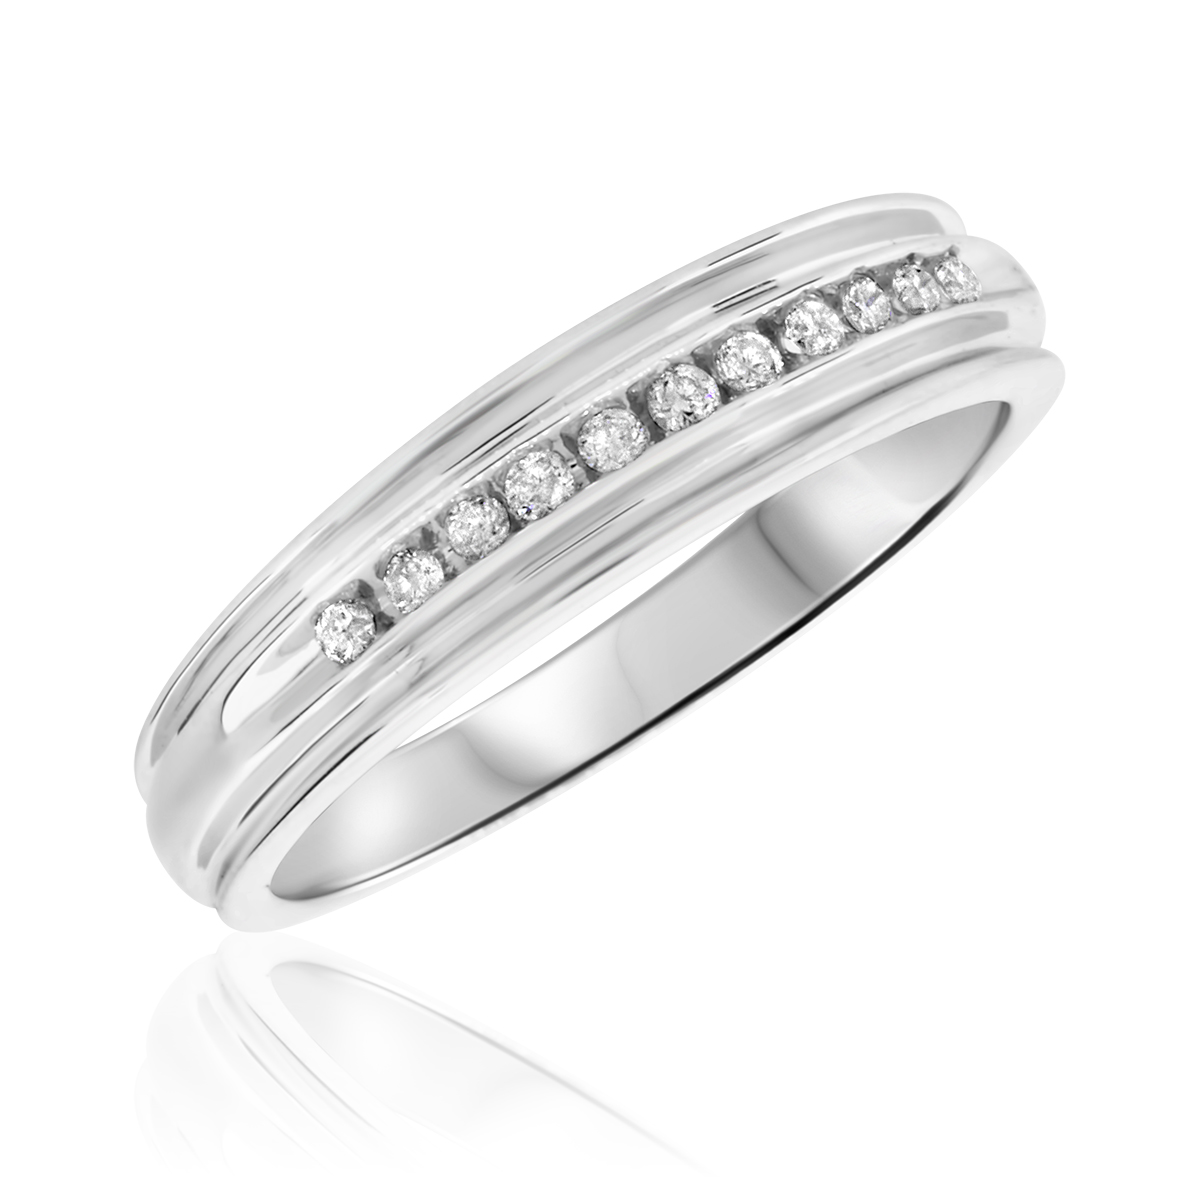 1 5 Carat TW Diamond Mens Wedding Band 10K White Gold